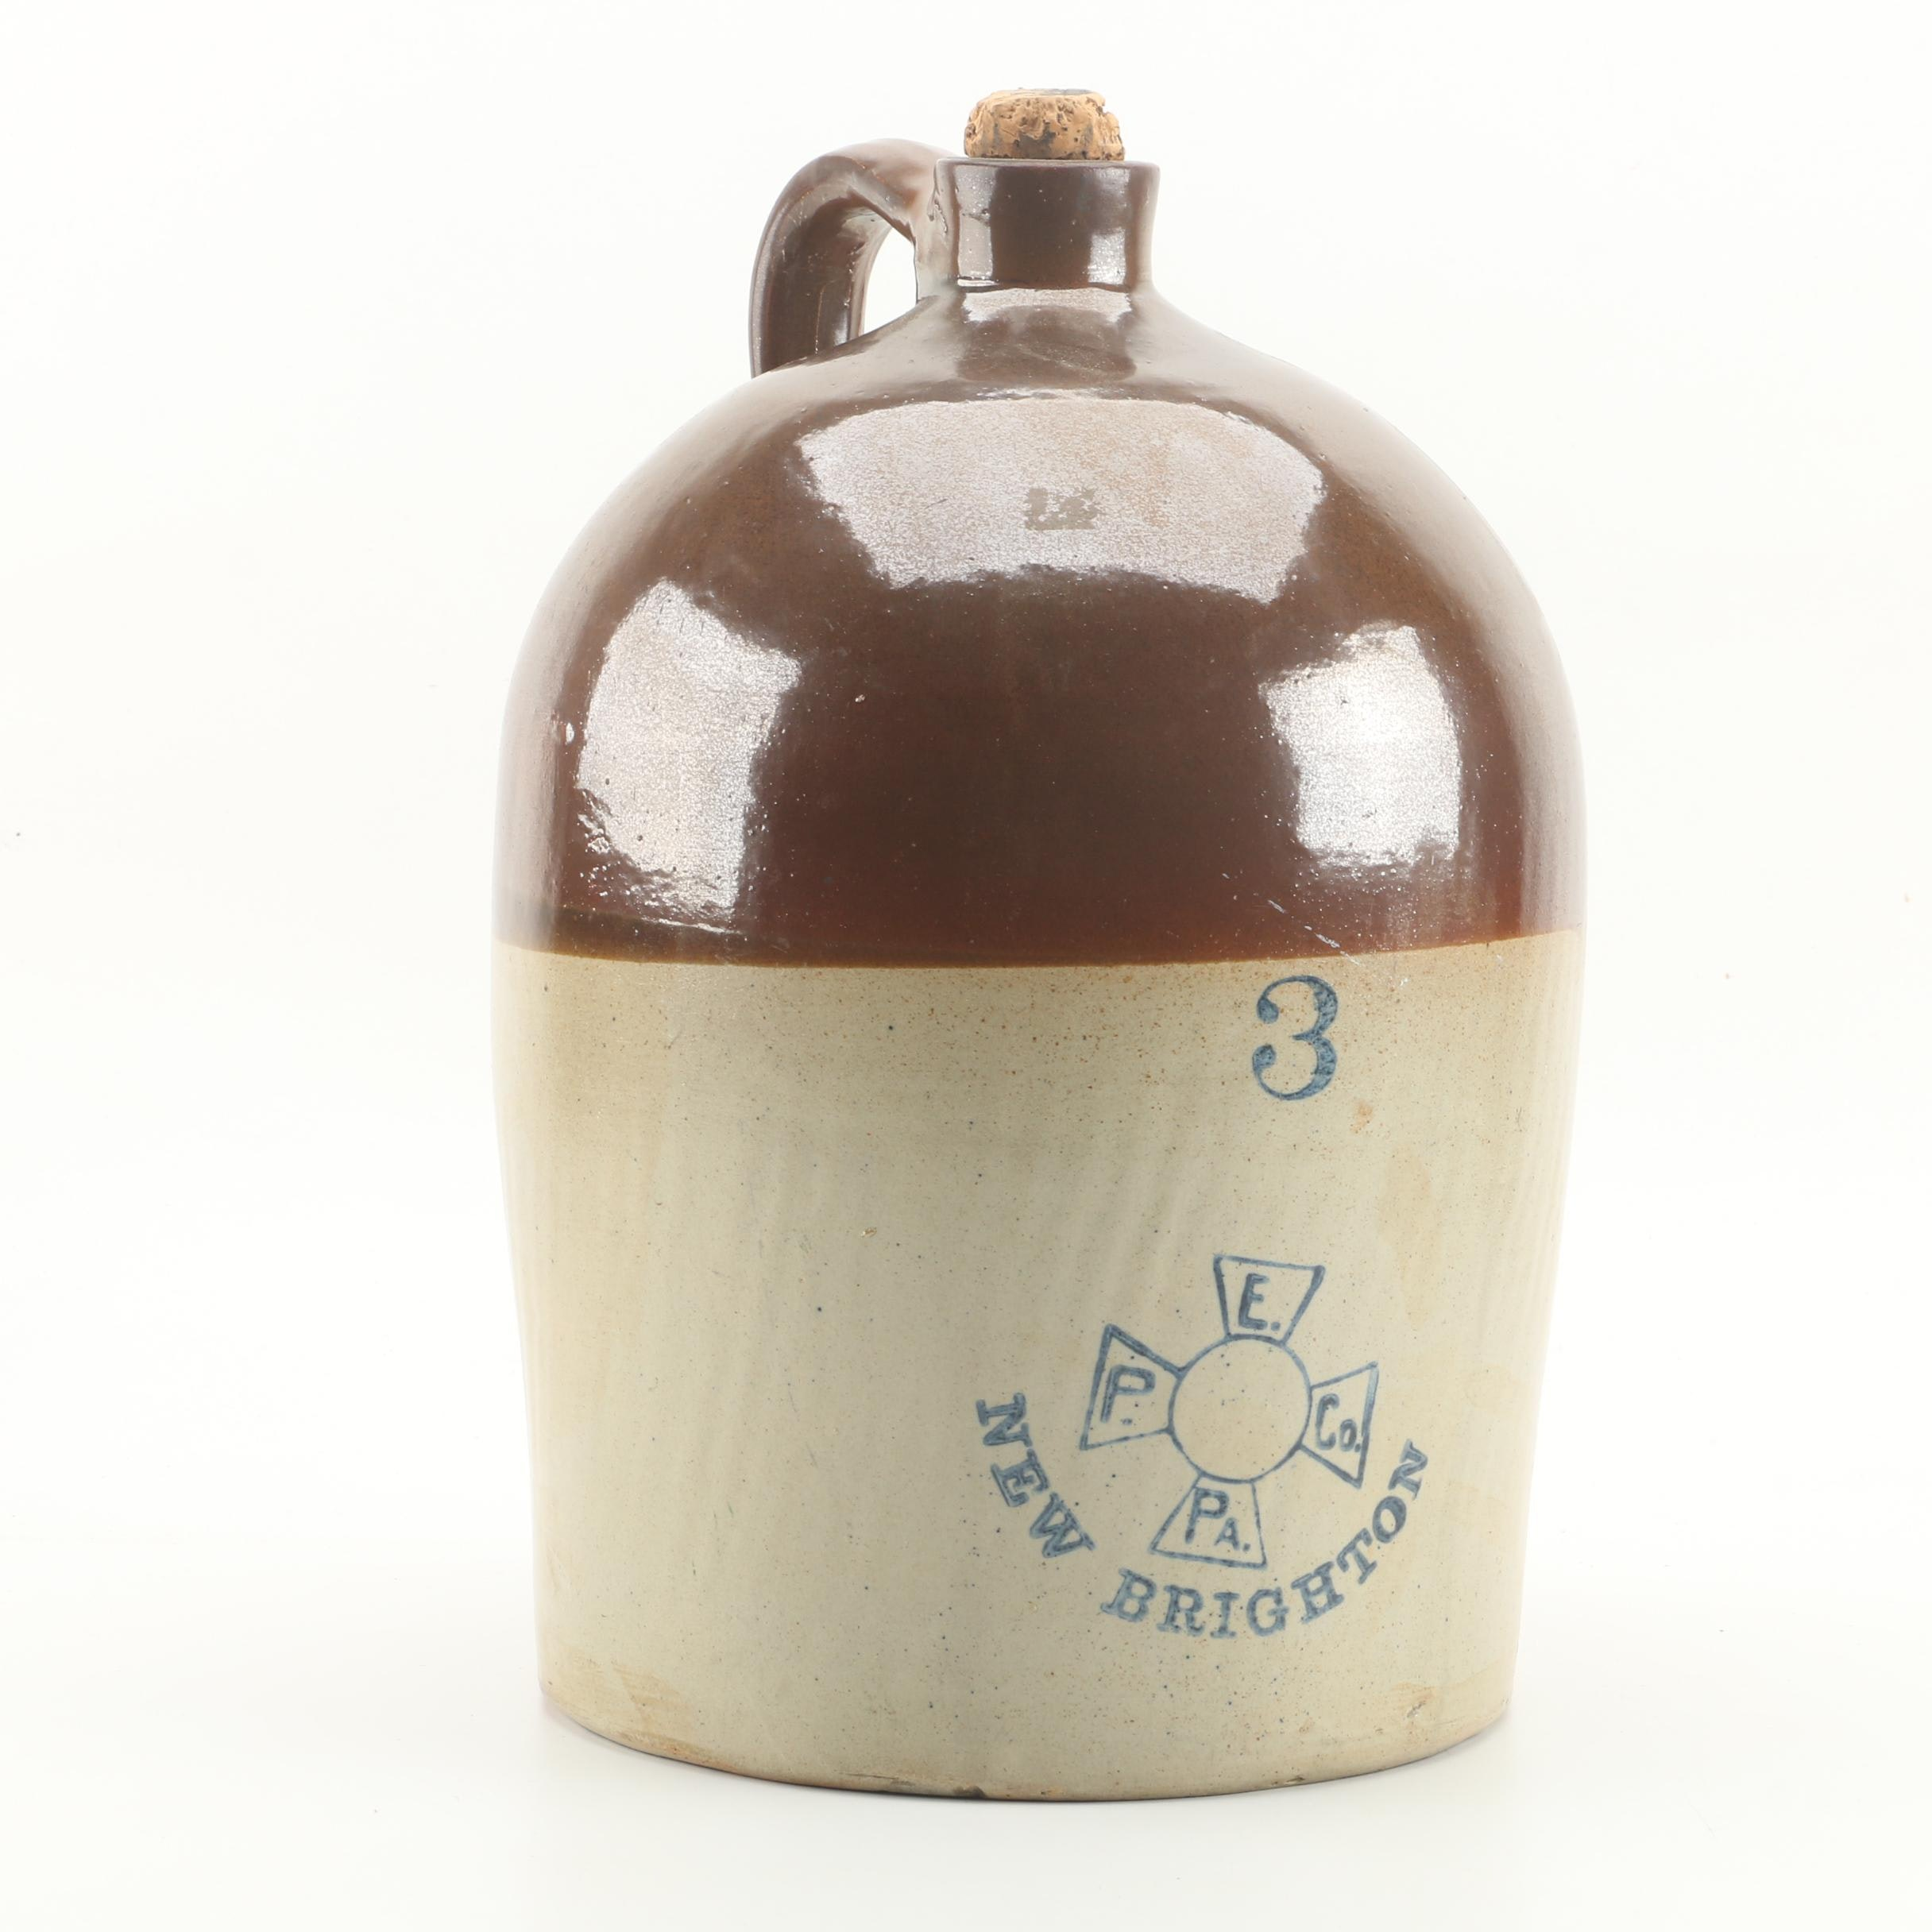 Enterprise Pottery Co. Stoneware 3-Gallon Jug, Late 19th/ Early 20th Century